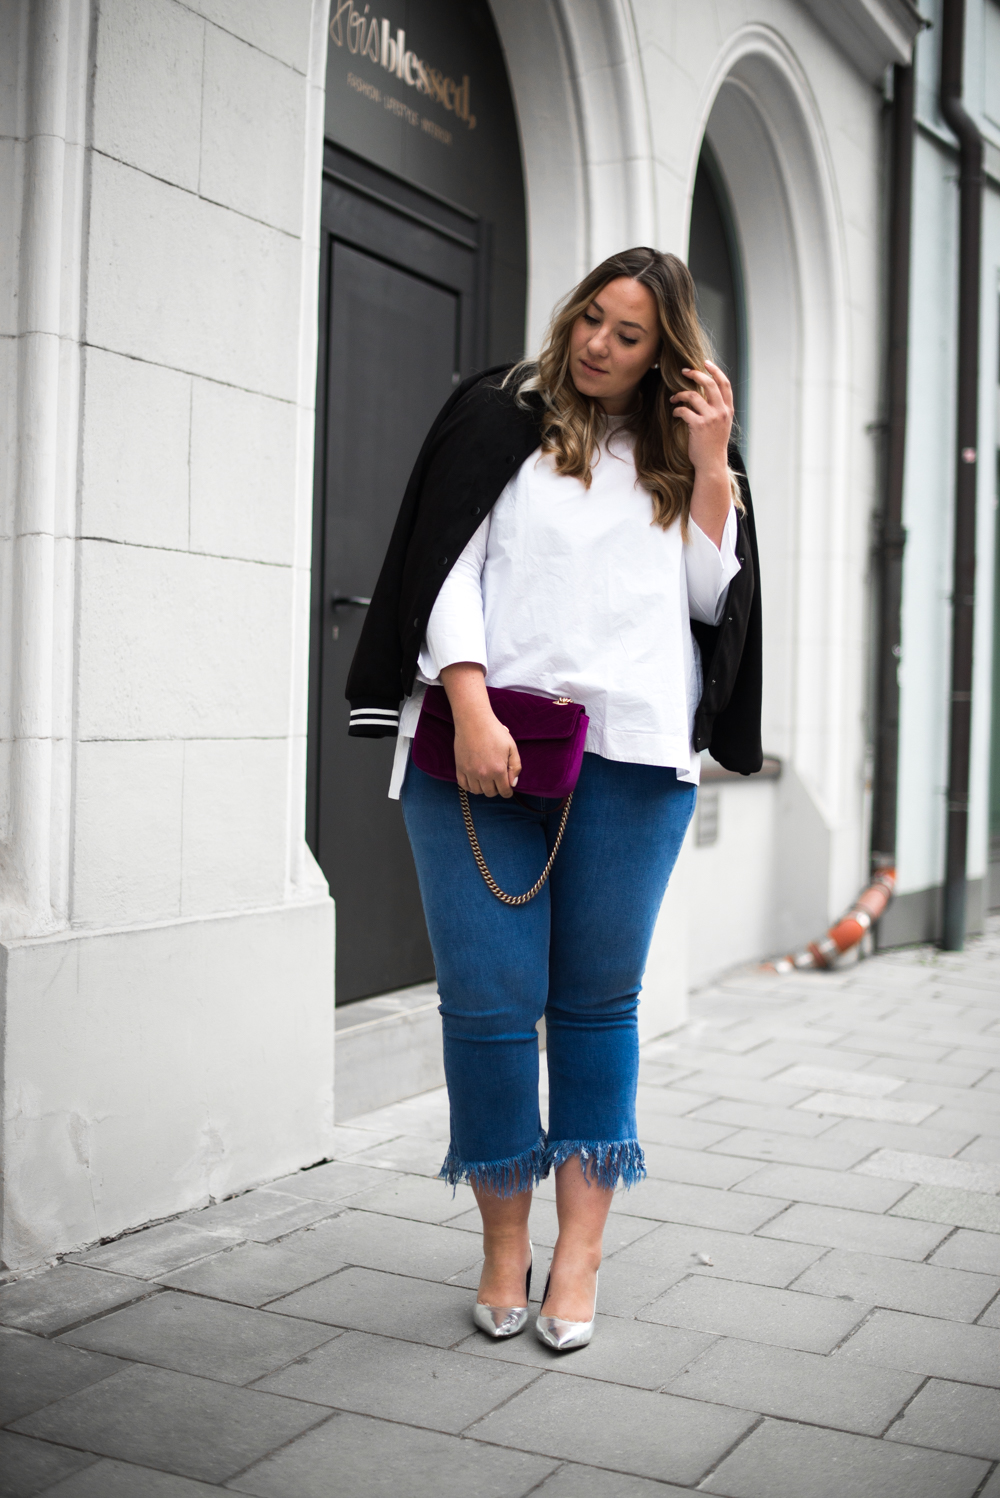 Gucci_The Skinny and the Curvy One_Ms wunderbar_Plus Size Blogger_curve blog_Fashionblog Deutschland_Plus Size Fashion Deutschland_College Jacke_Fringe Jeans (5 von 15)